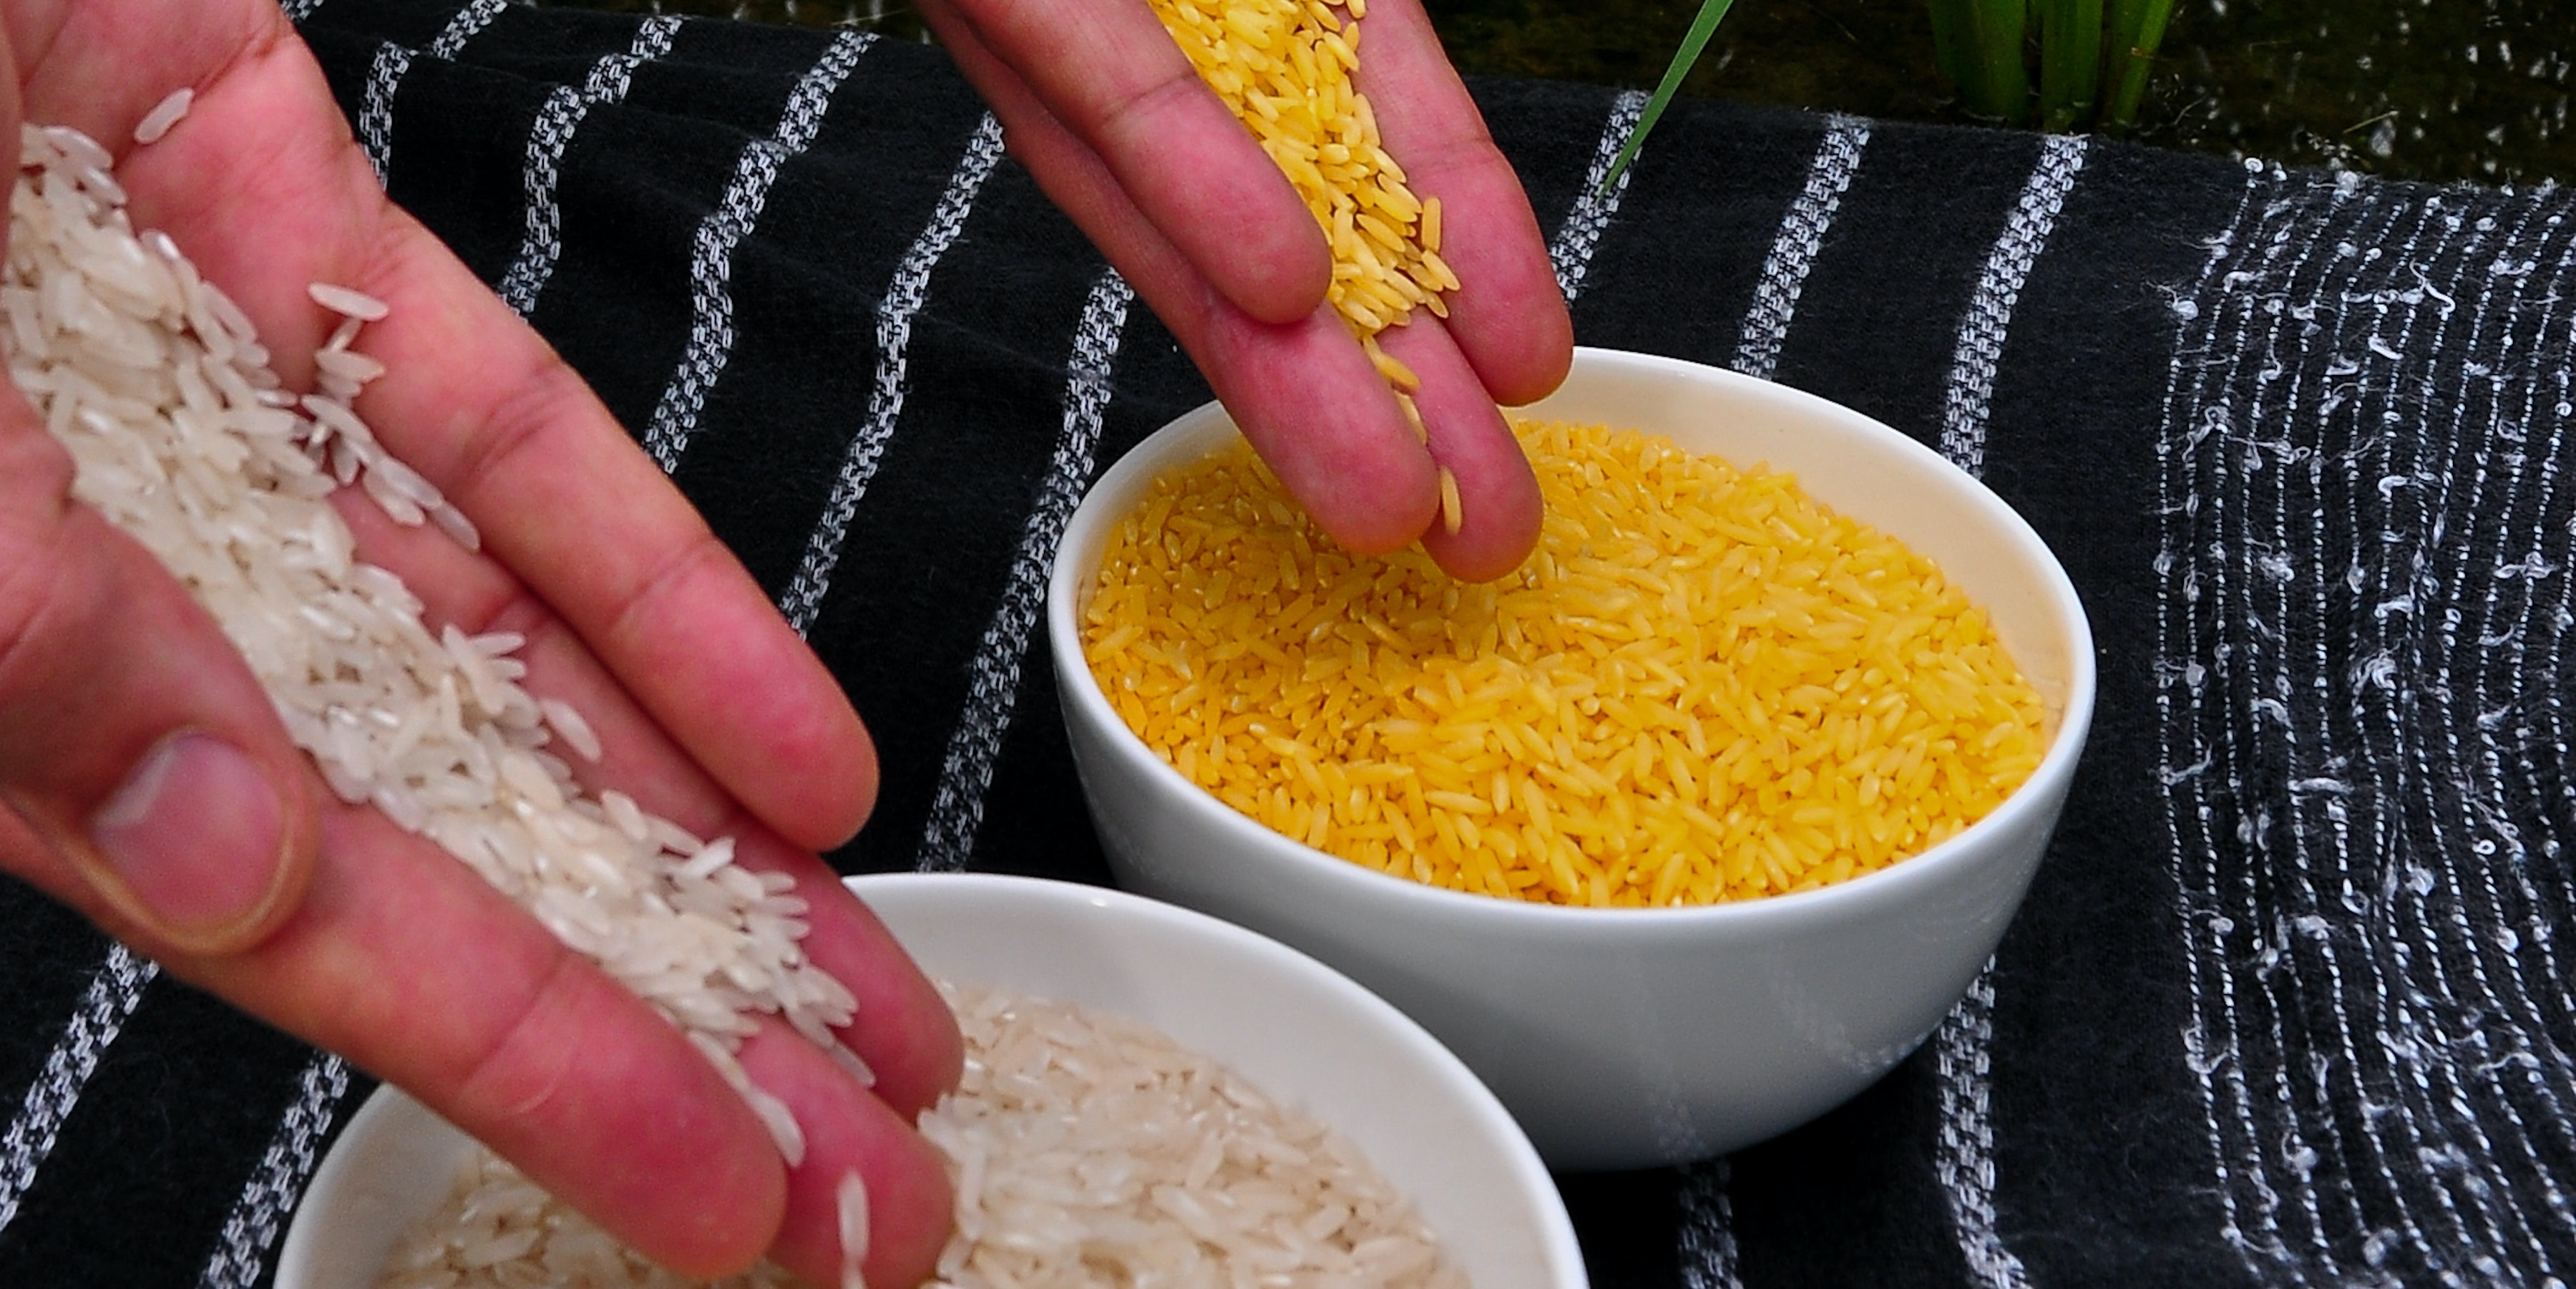 Can We Call Bill Gates's Golden Rice Experiment a Failure Yet?